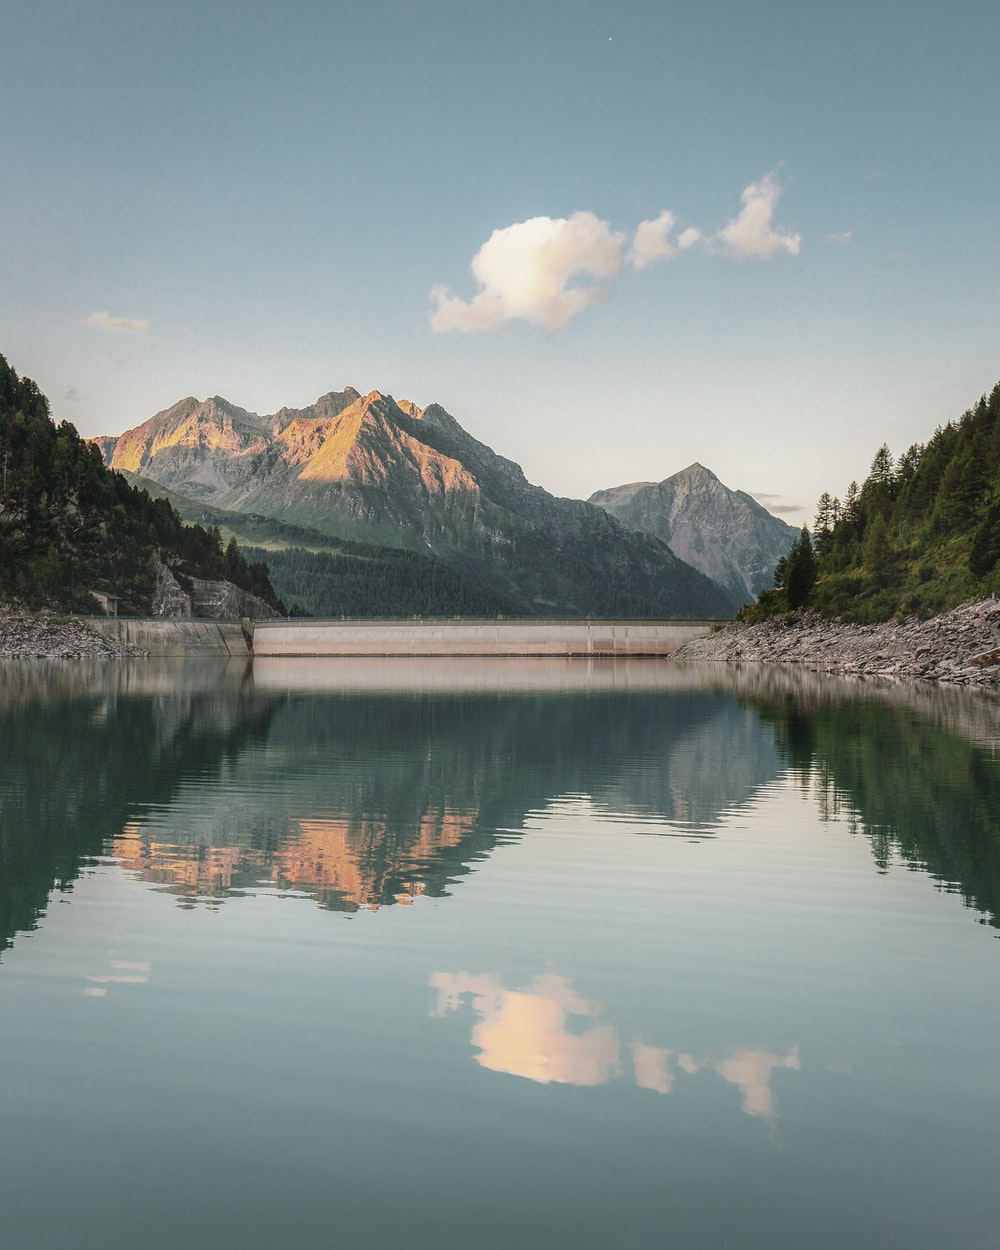 body of water near mountain under white clouds and blue sky during daytime